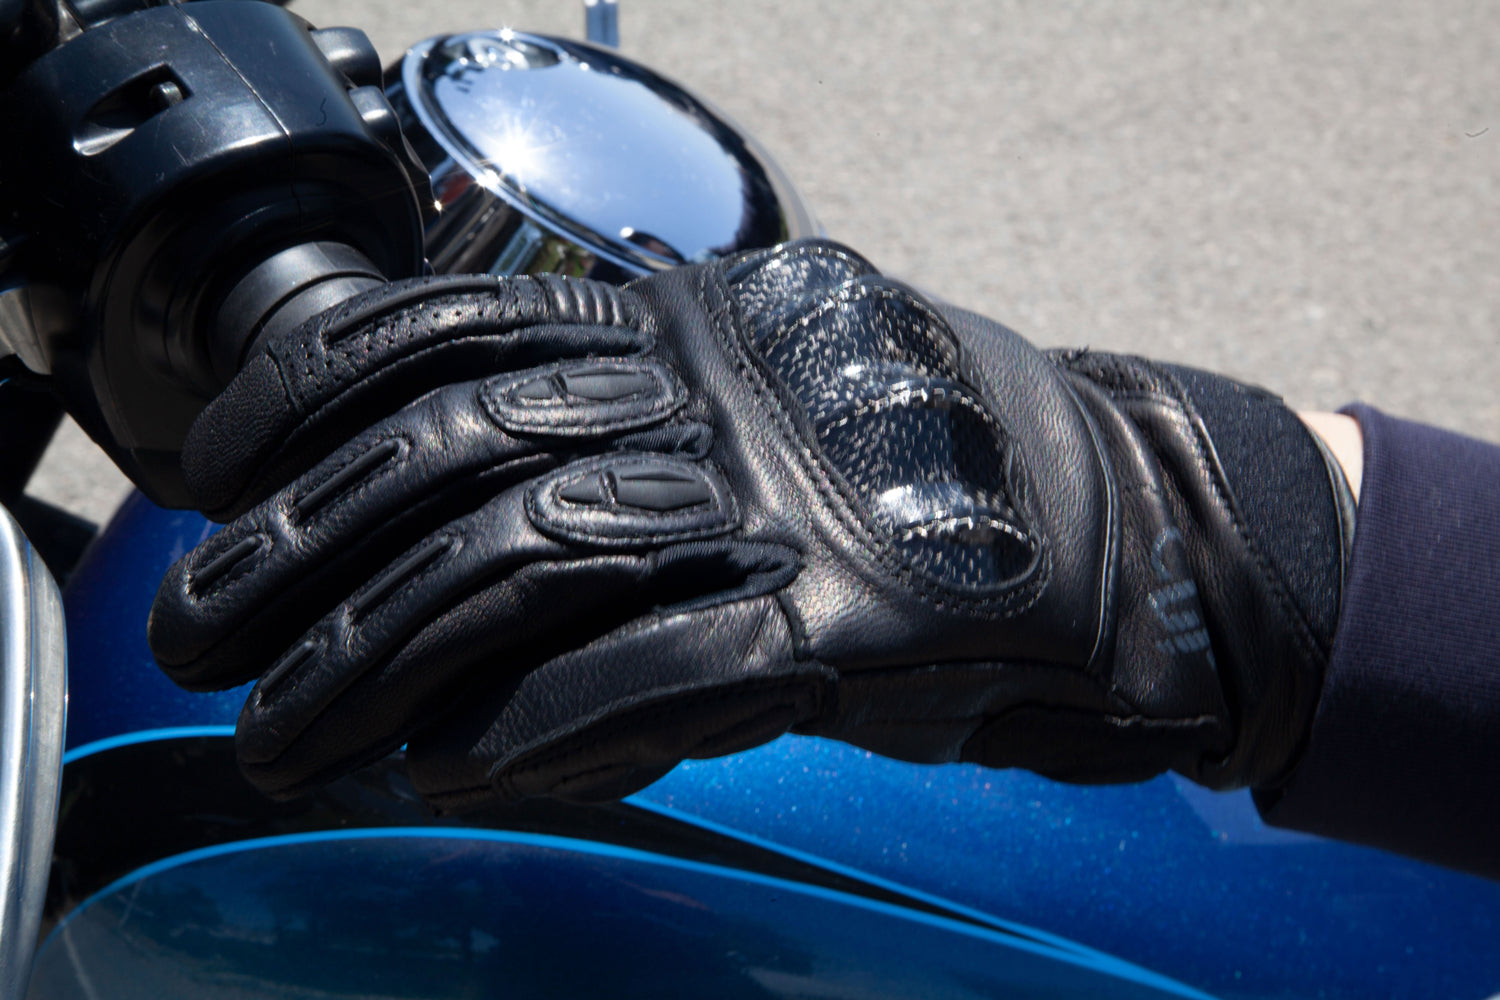 Sport City Motorcycle Glove